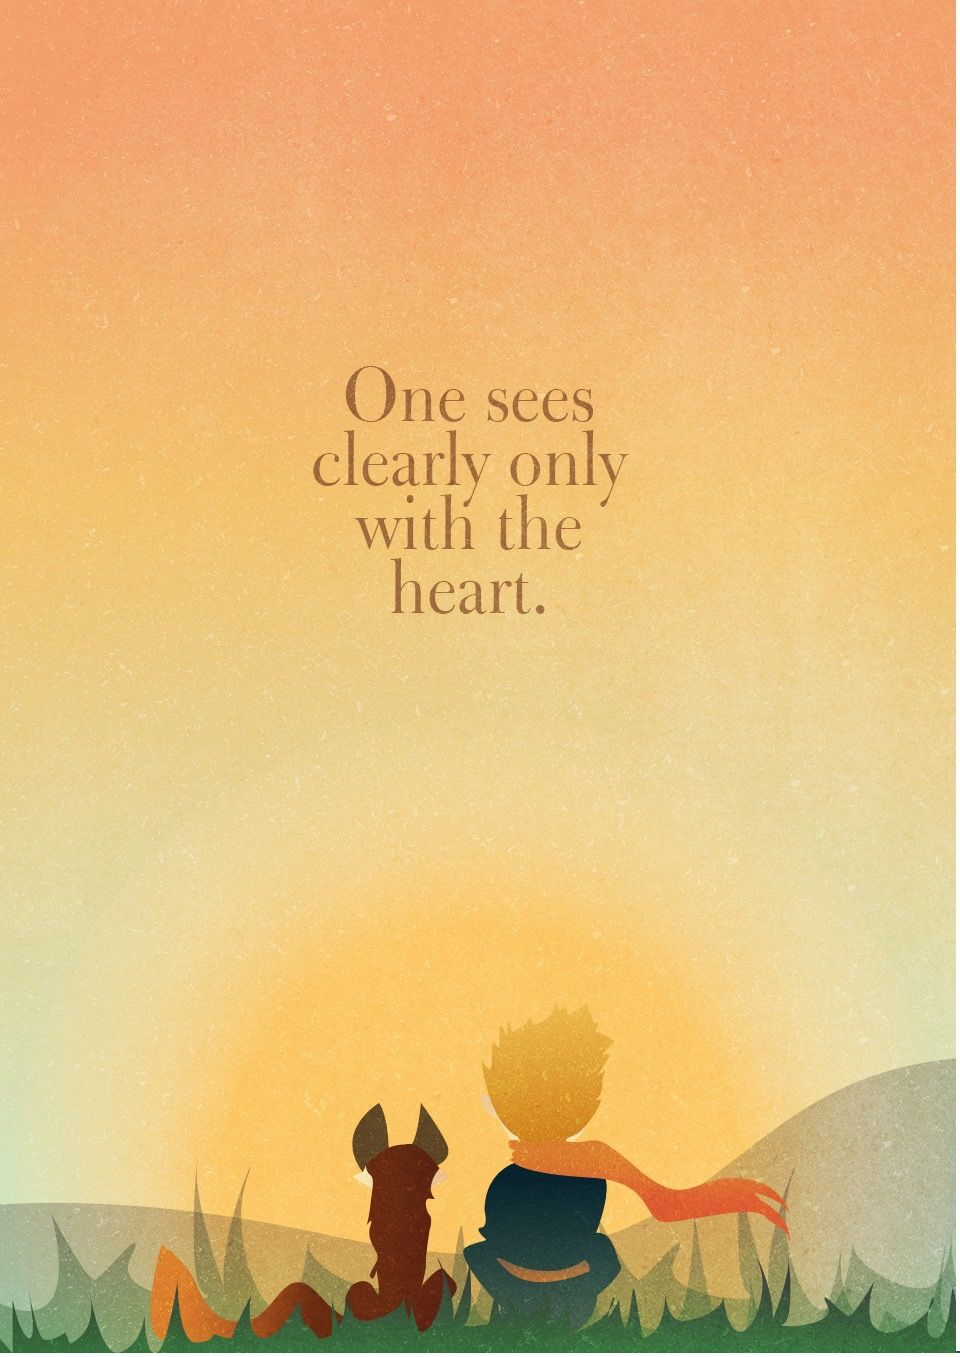 Pin by Nicole Picart on Disney Wallpapers Little prince